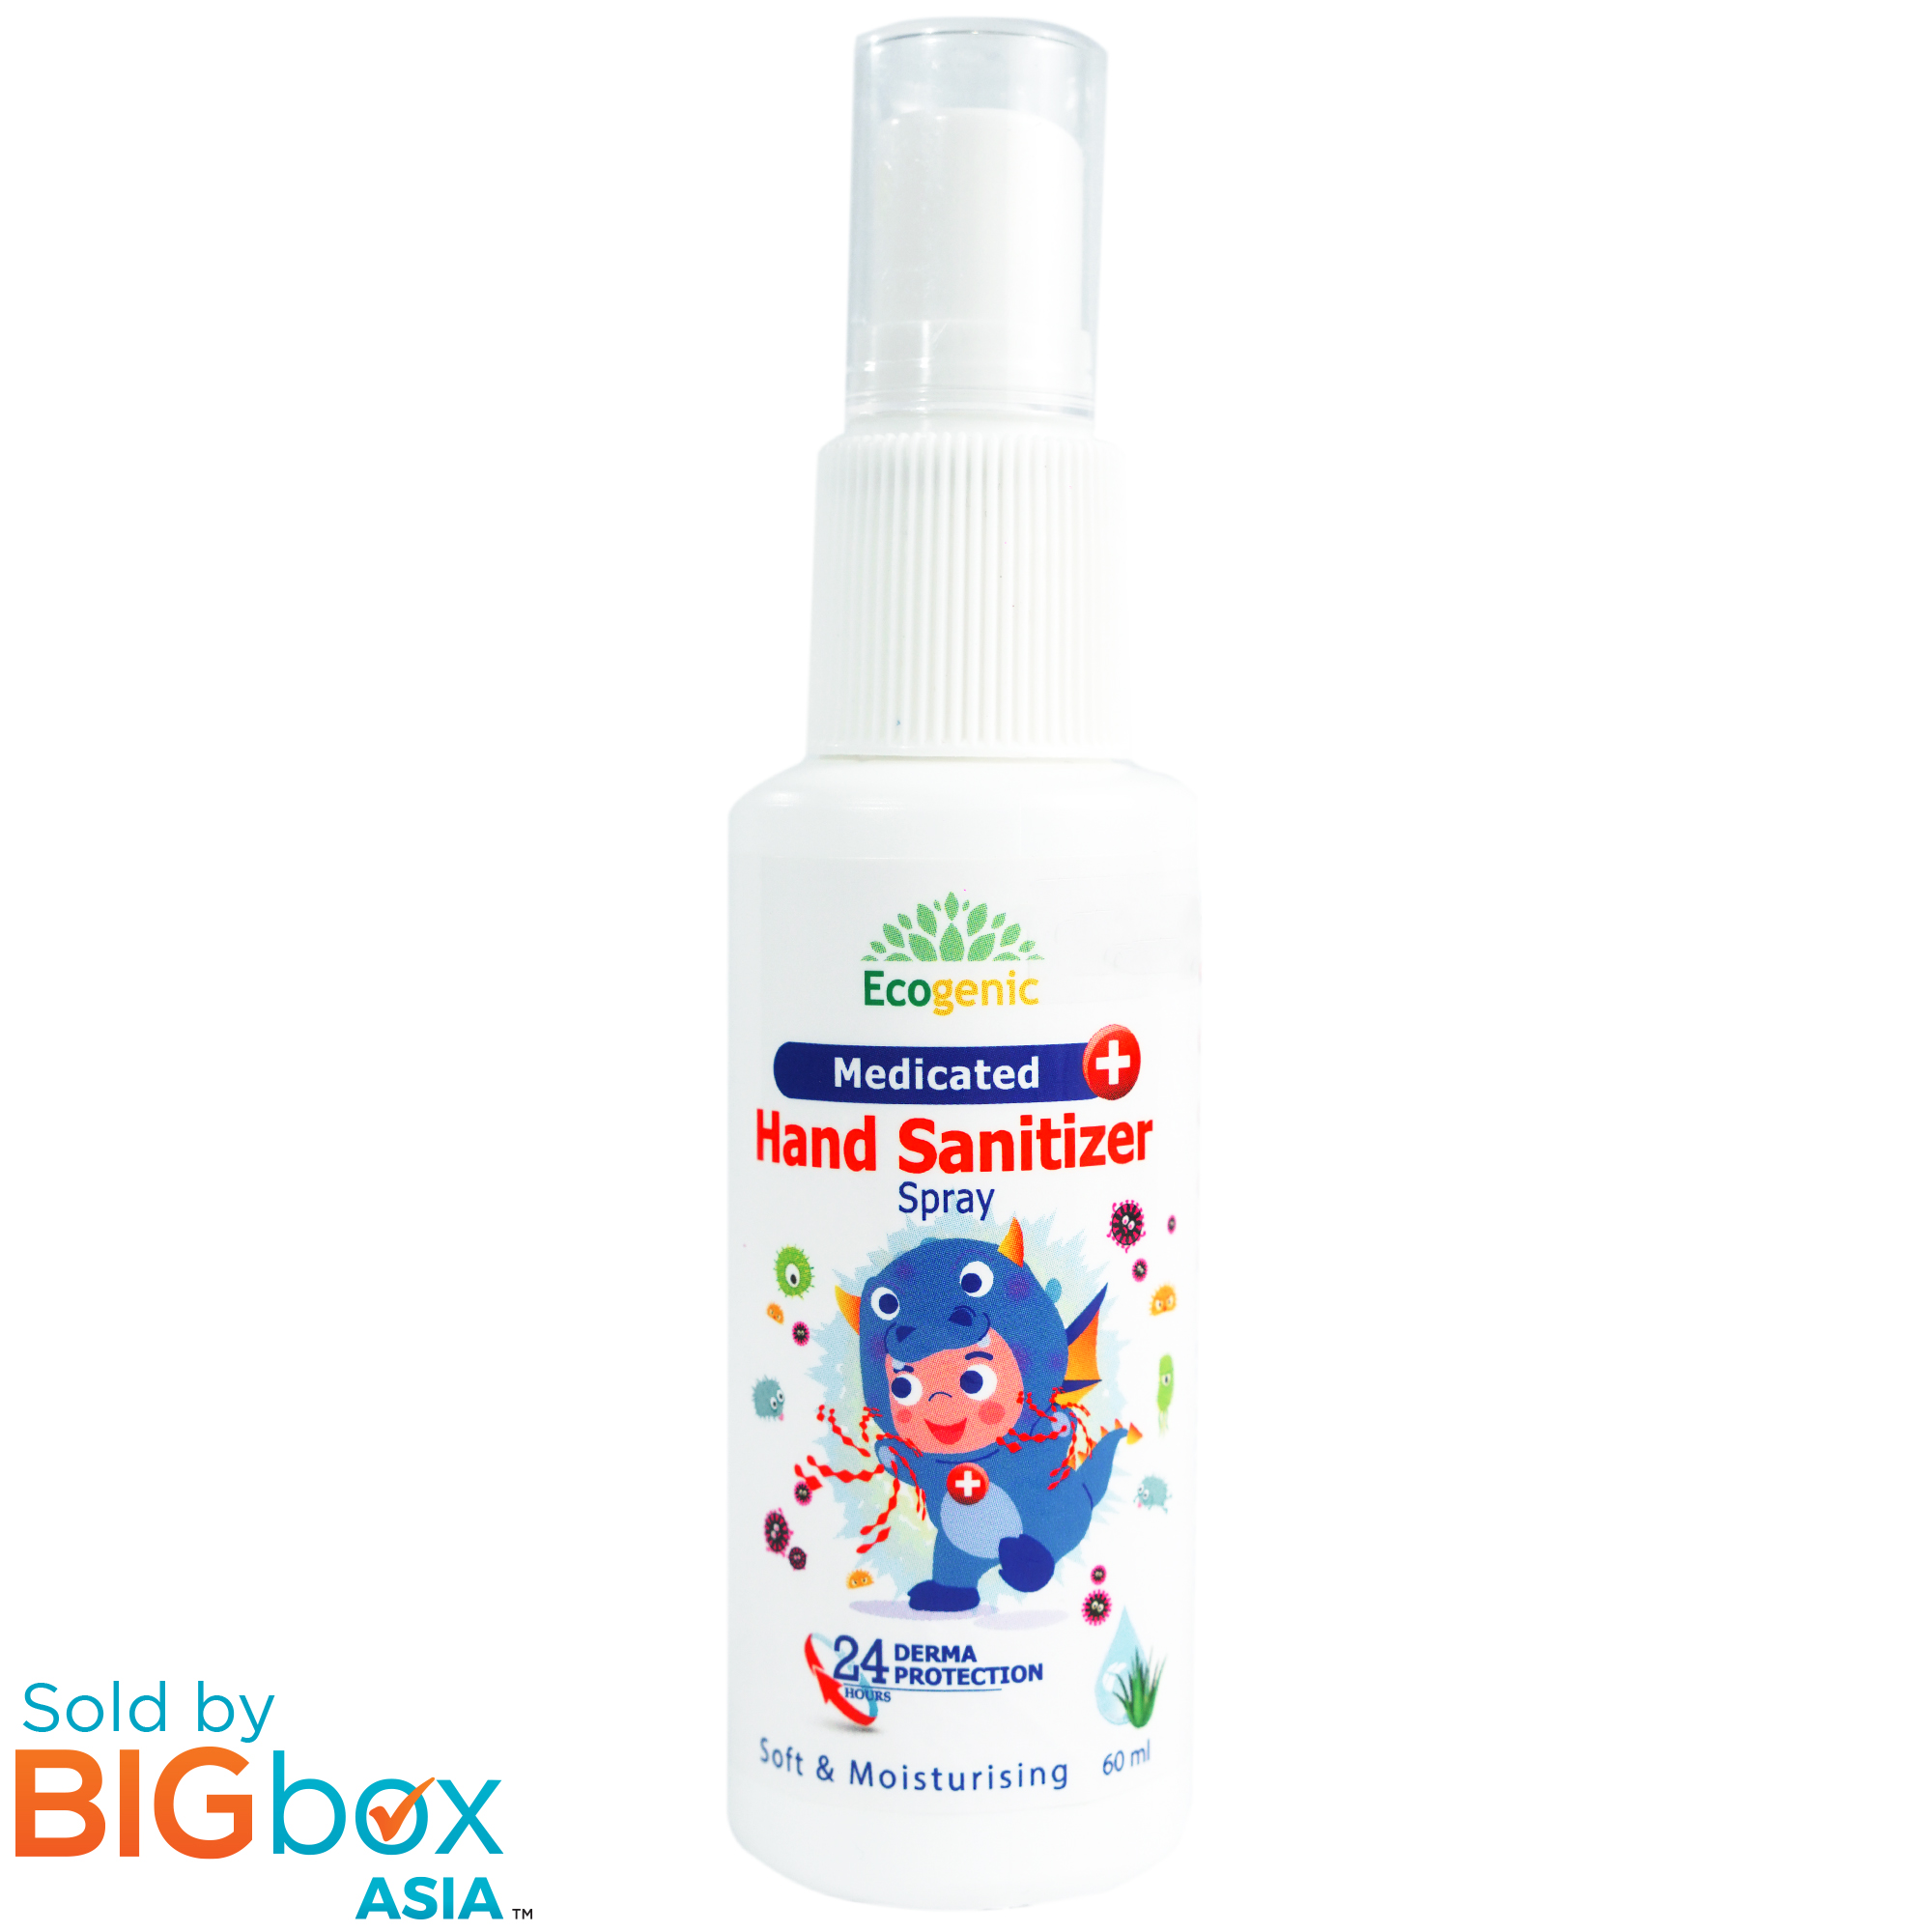 Ecogenic Medicated Hand Sanitizer Spray 60ml x 5